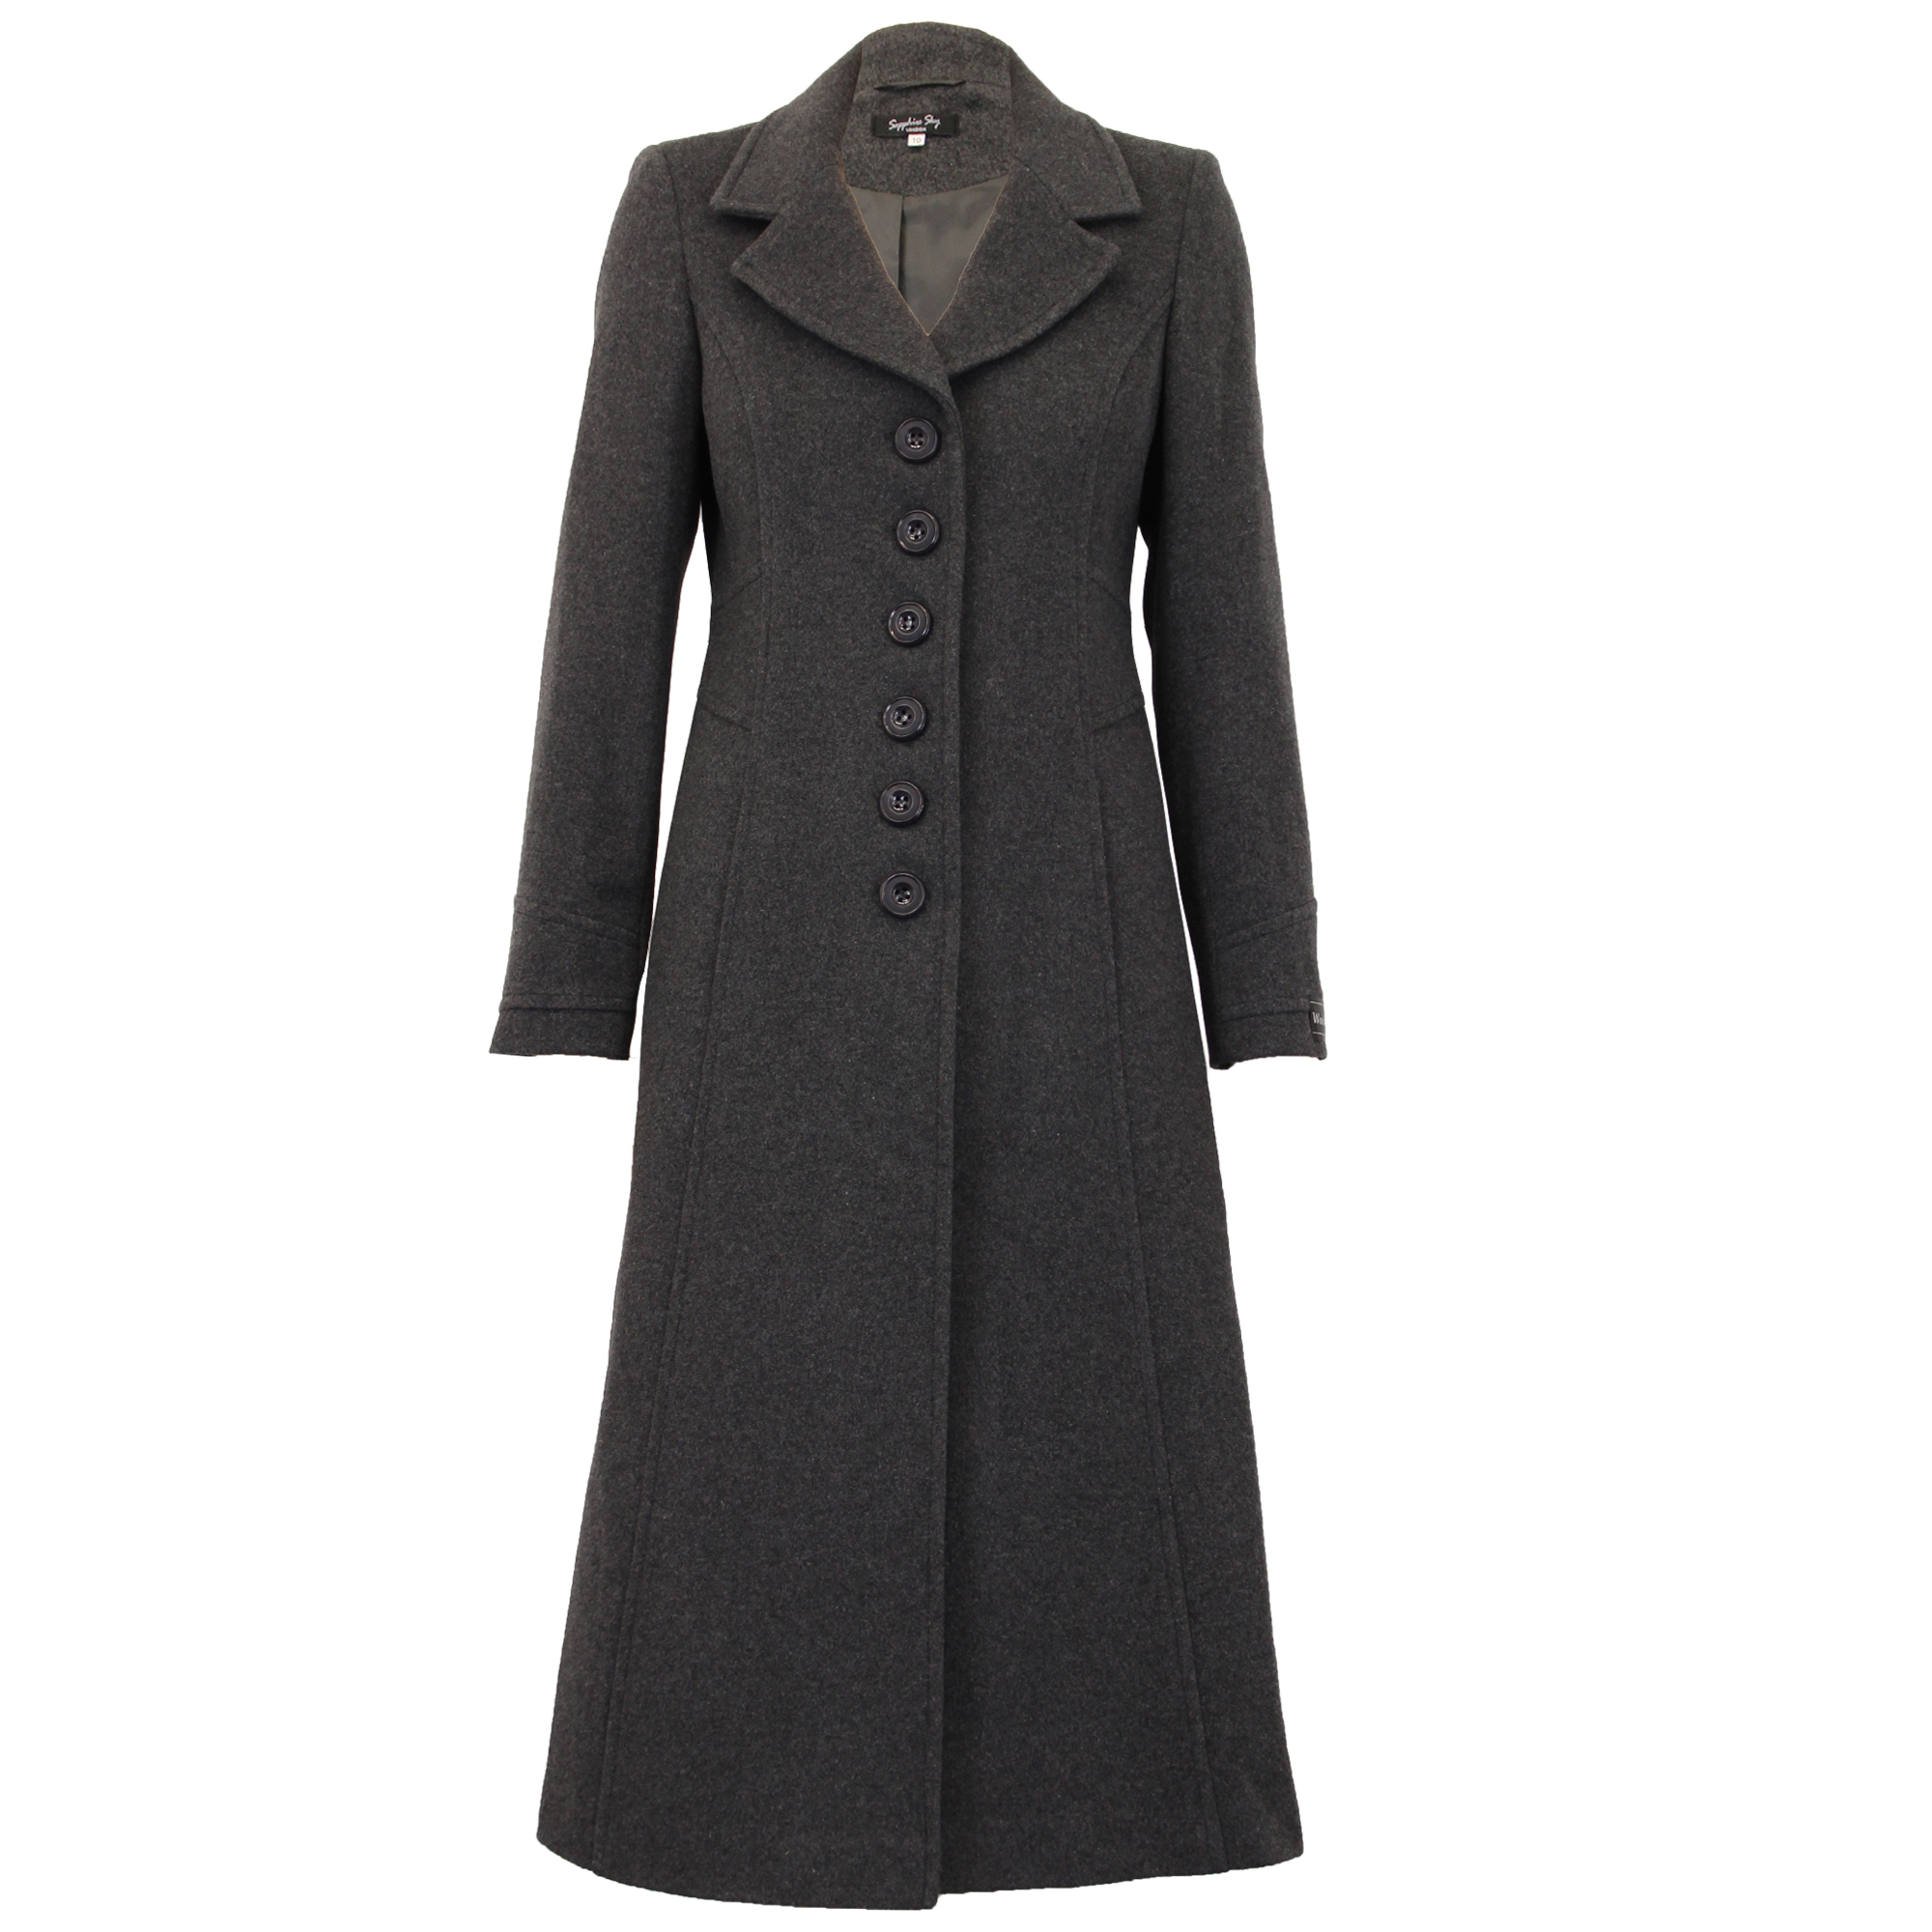 Shop the latest styles of Womens Wool & Wool Blend Coats at Macys. Check out our designer collection of chic coats including peacoats, trench coats, puffer coats and more!